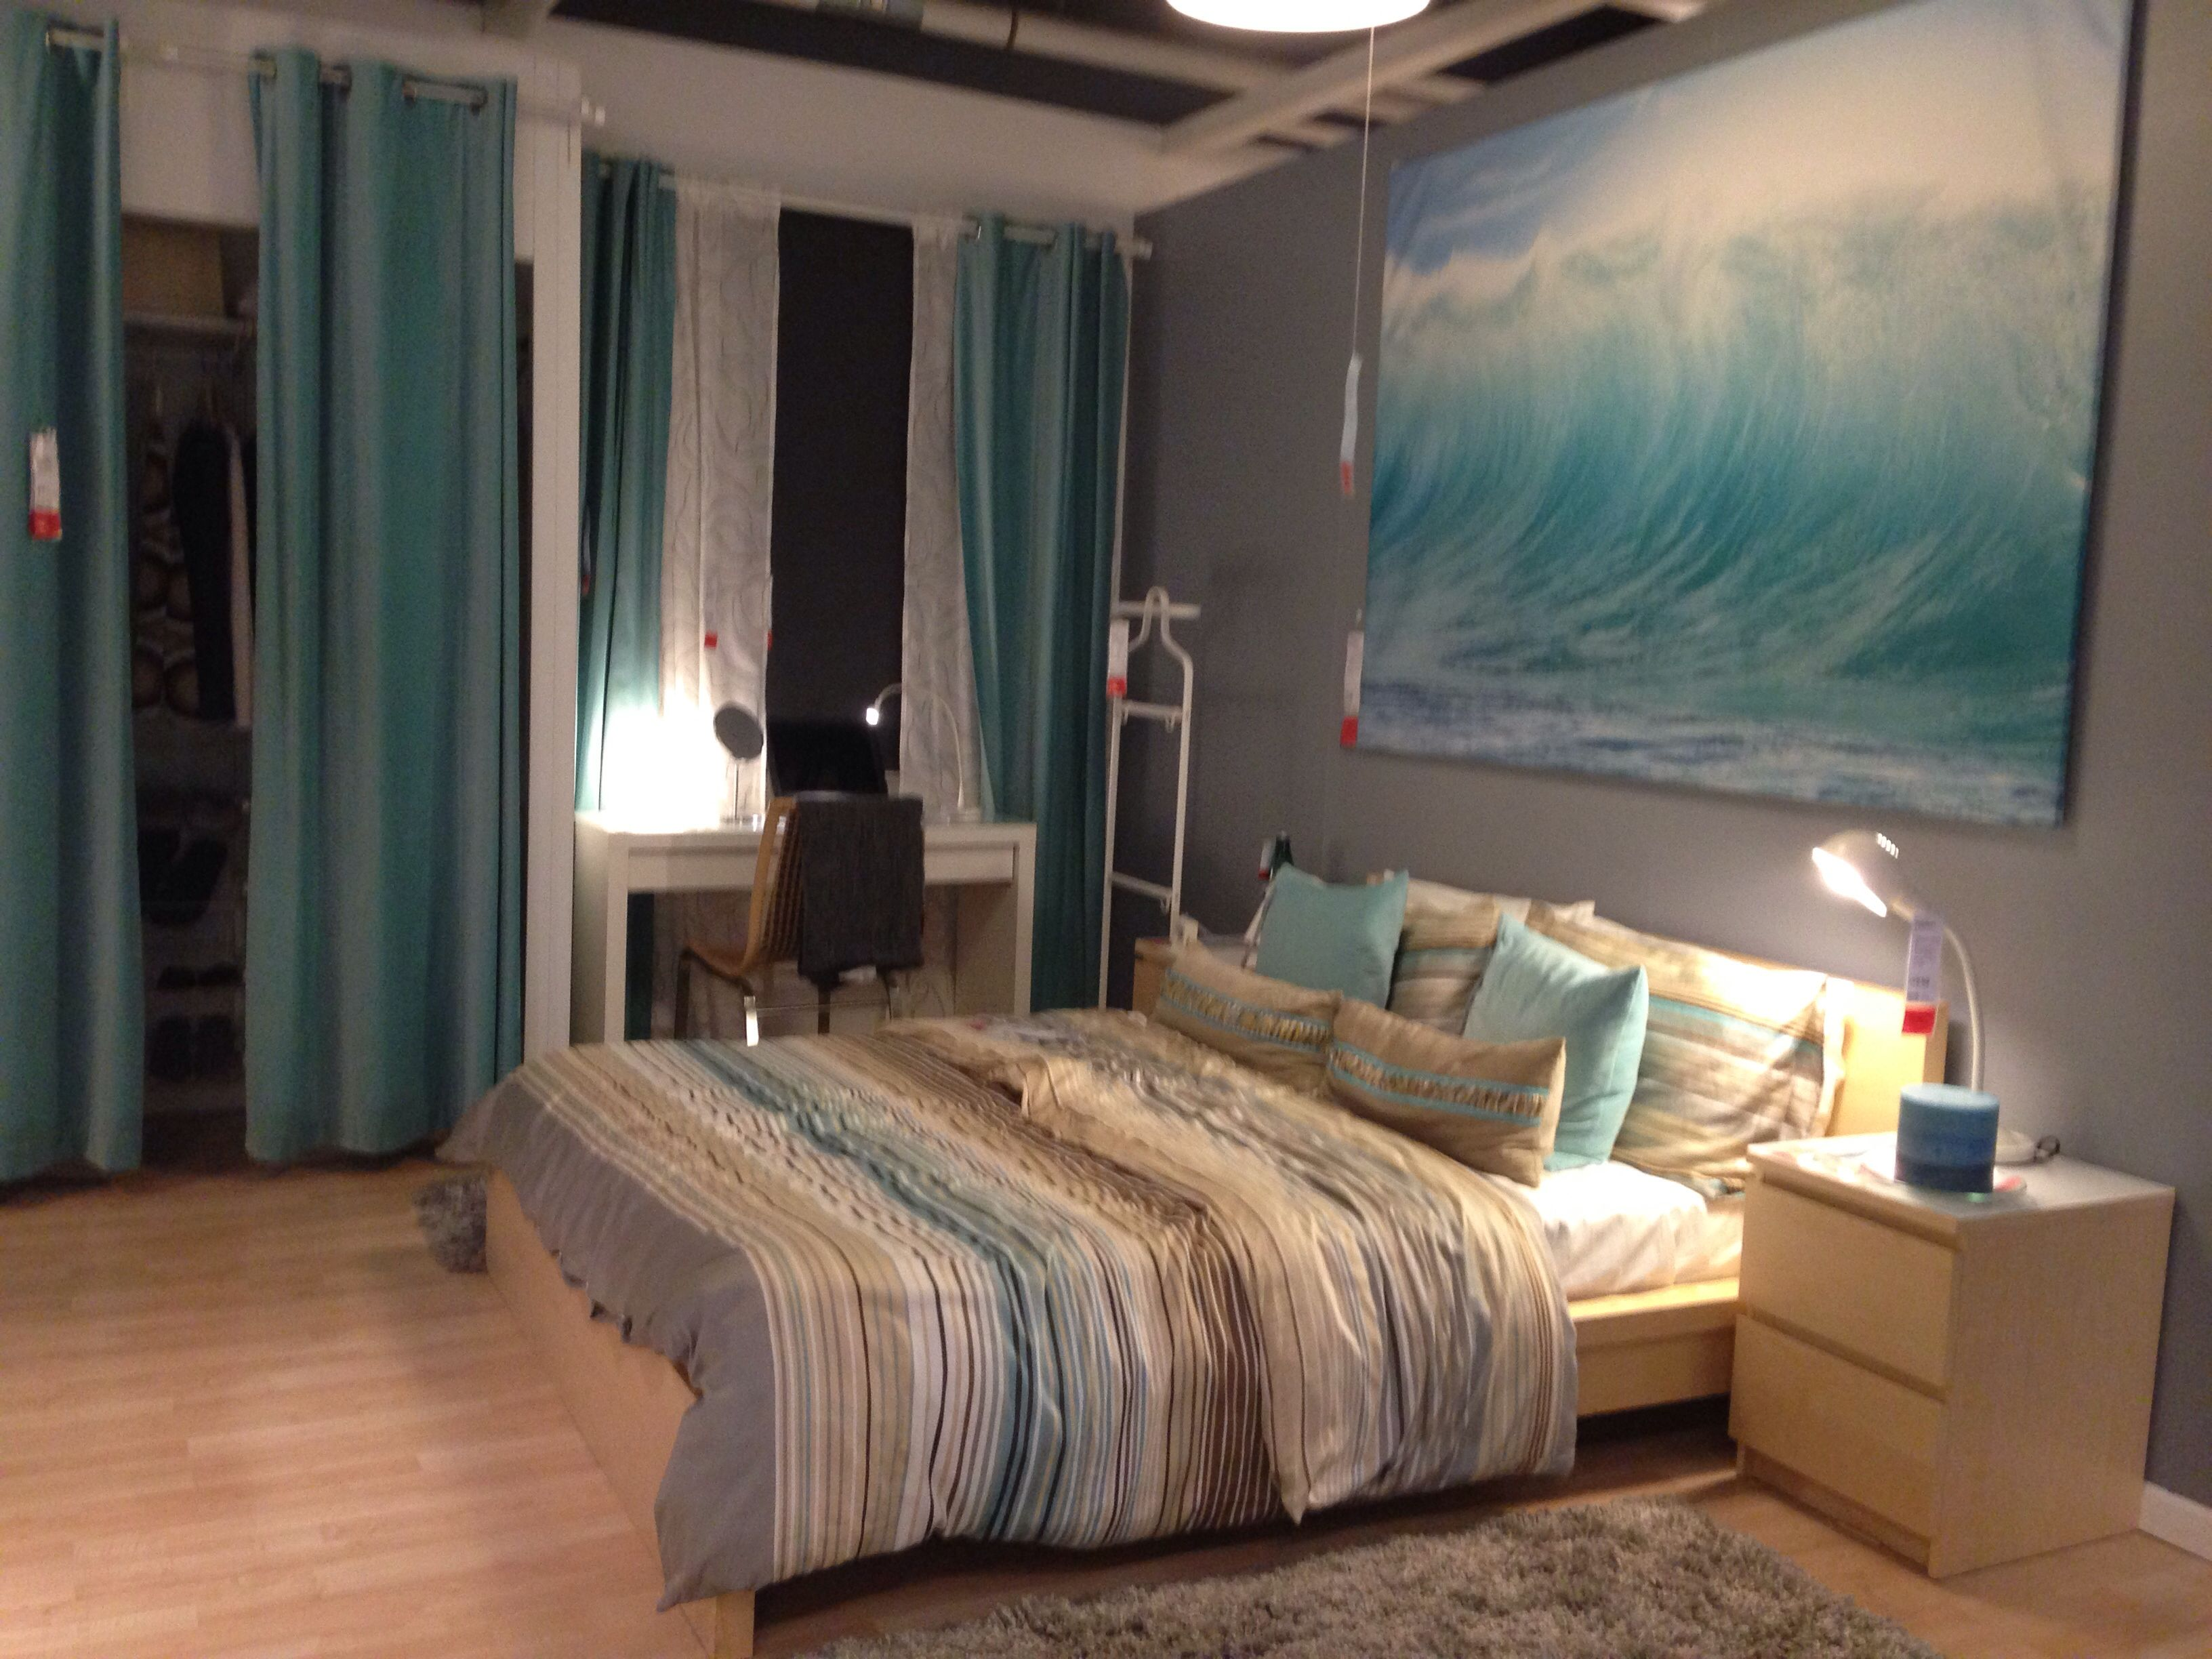 Beach Themed Bedroom. Everything Is Sold At IKEA. Love It